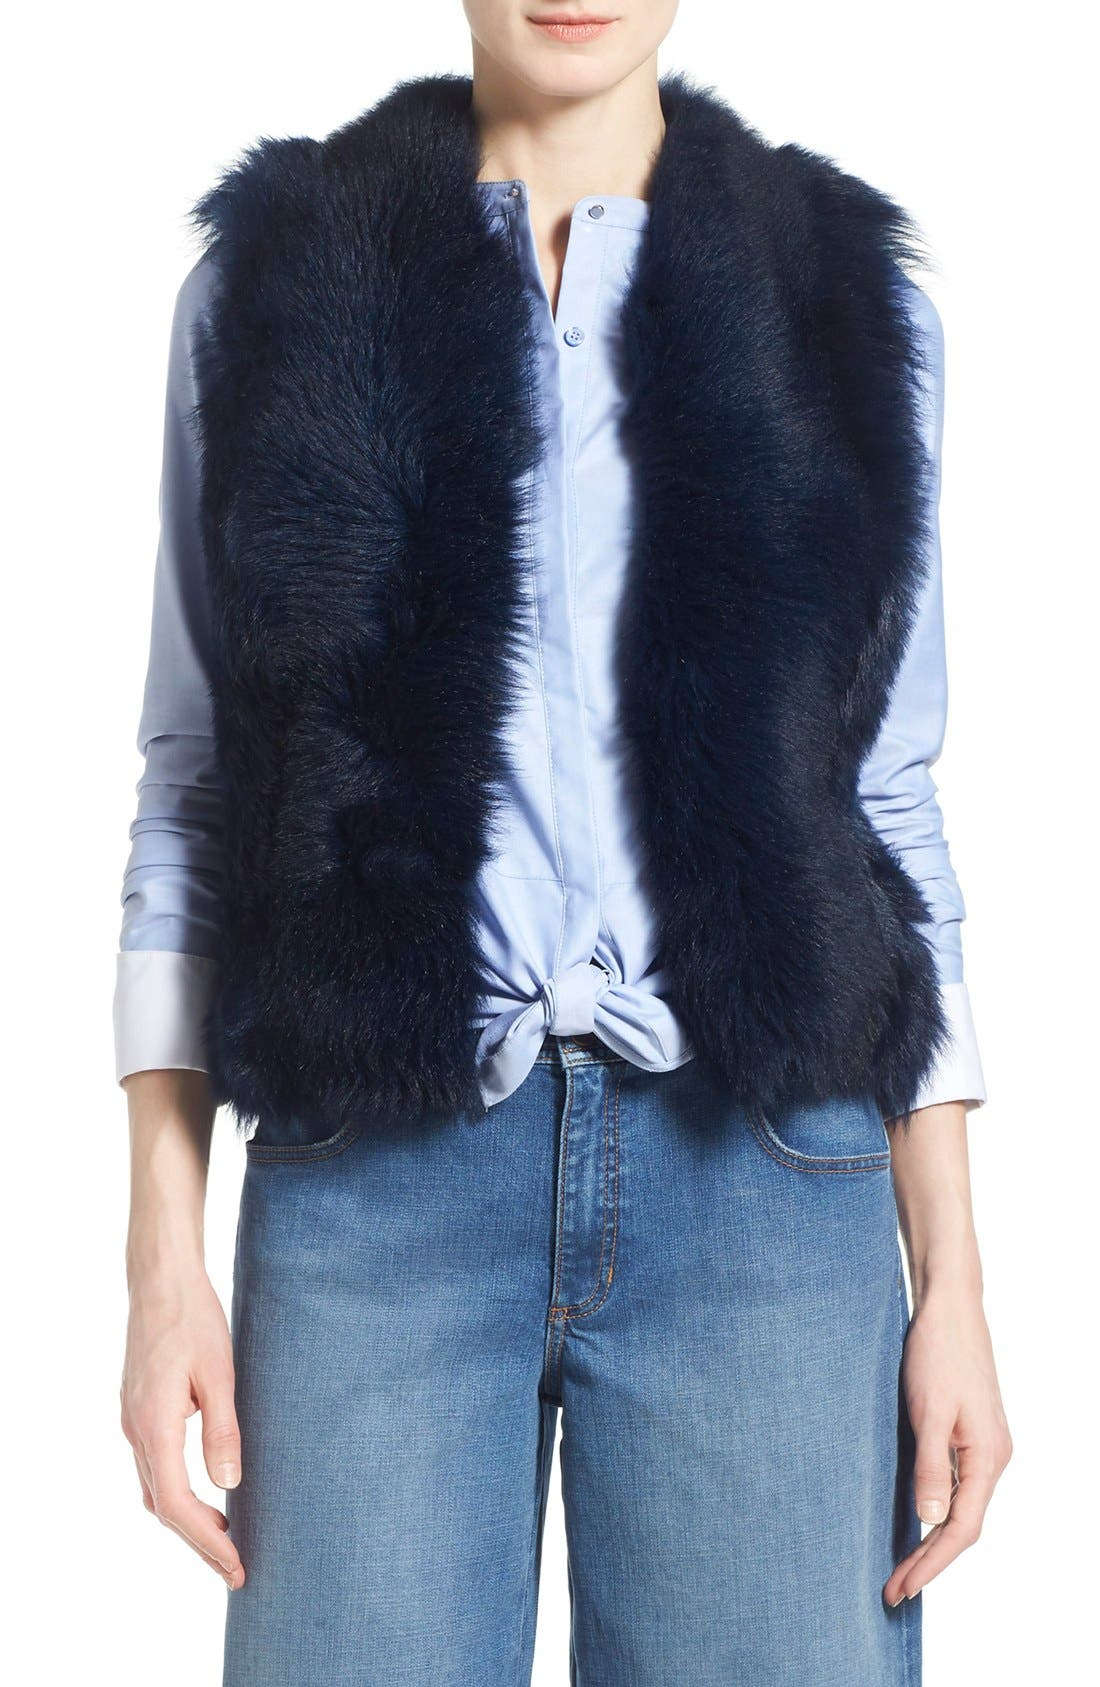 Alternate Image 1 Selected - Olivia Palermo + Chelsea28 Genuine Shearling Peplum Vest